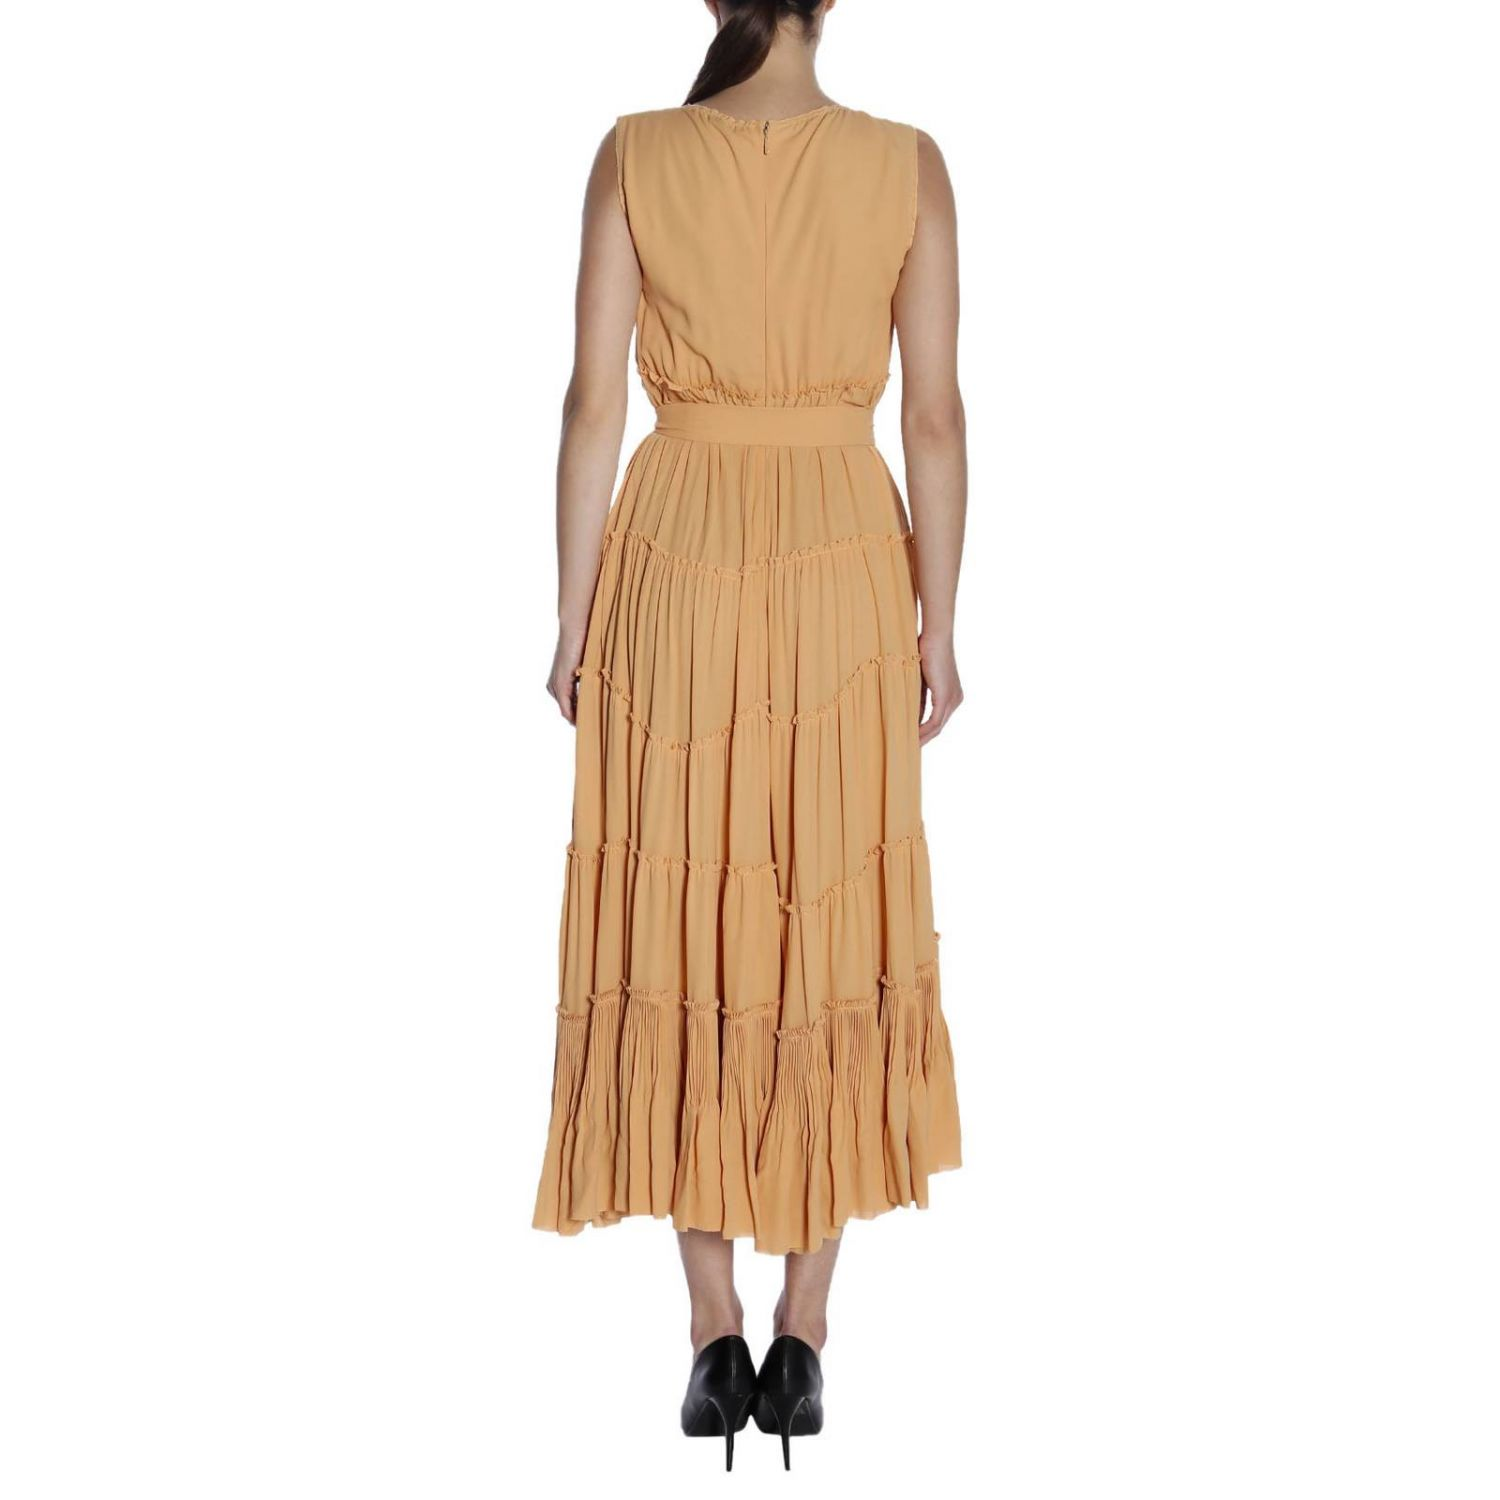 Dress Bottega Veneta: Dress women Bottega Veneta peach 3